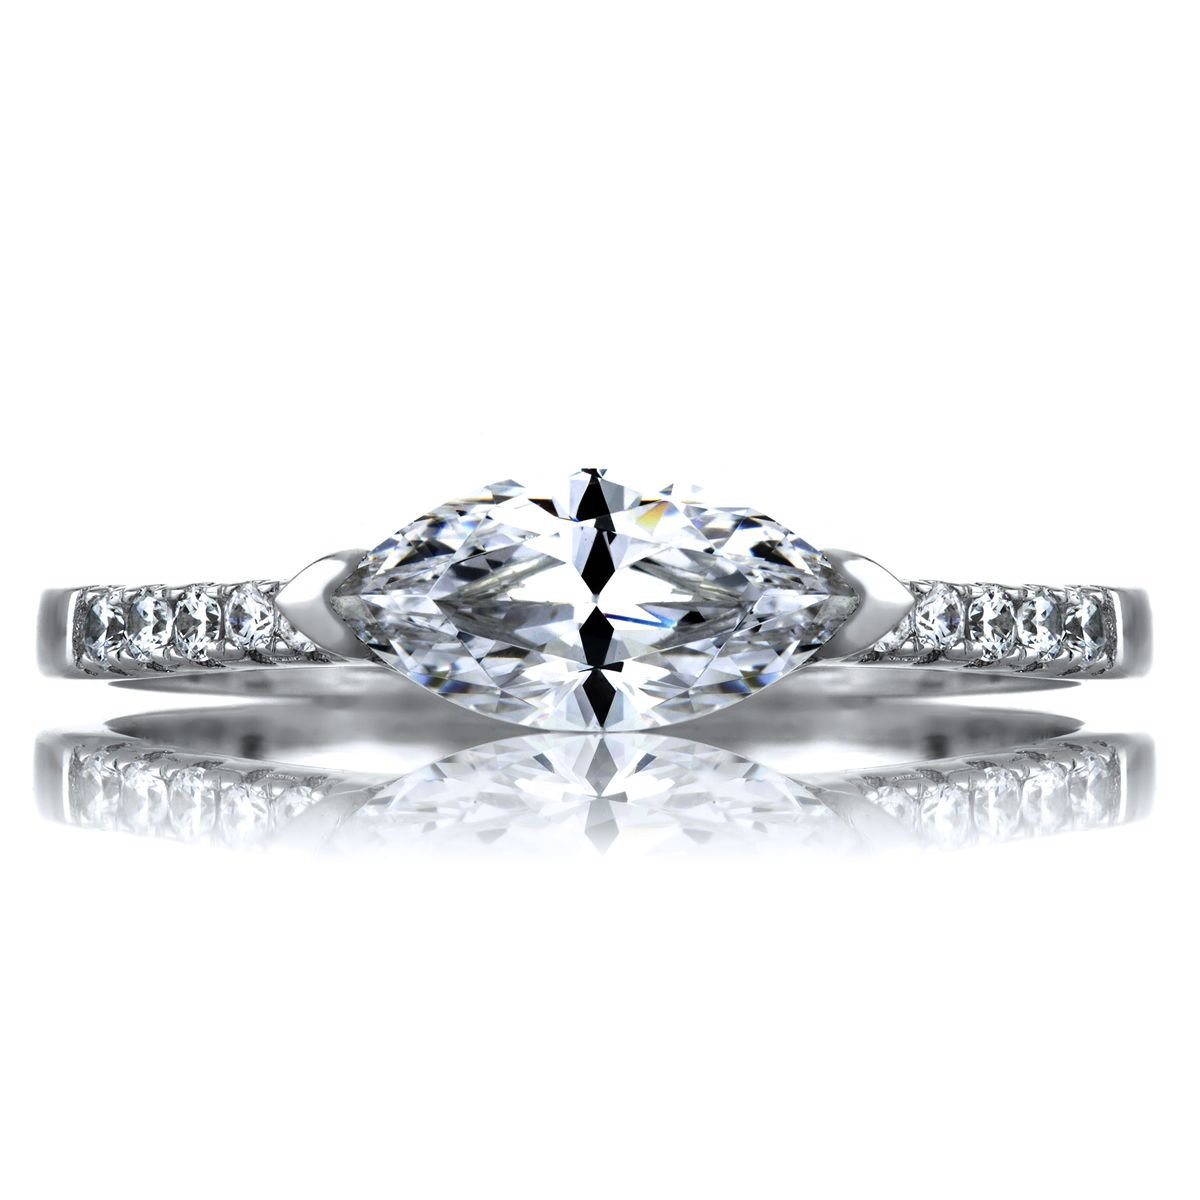 Marquise diamond setting ideas - Paxton S 1 25 East West Set Marquise Cz Engagement Ring